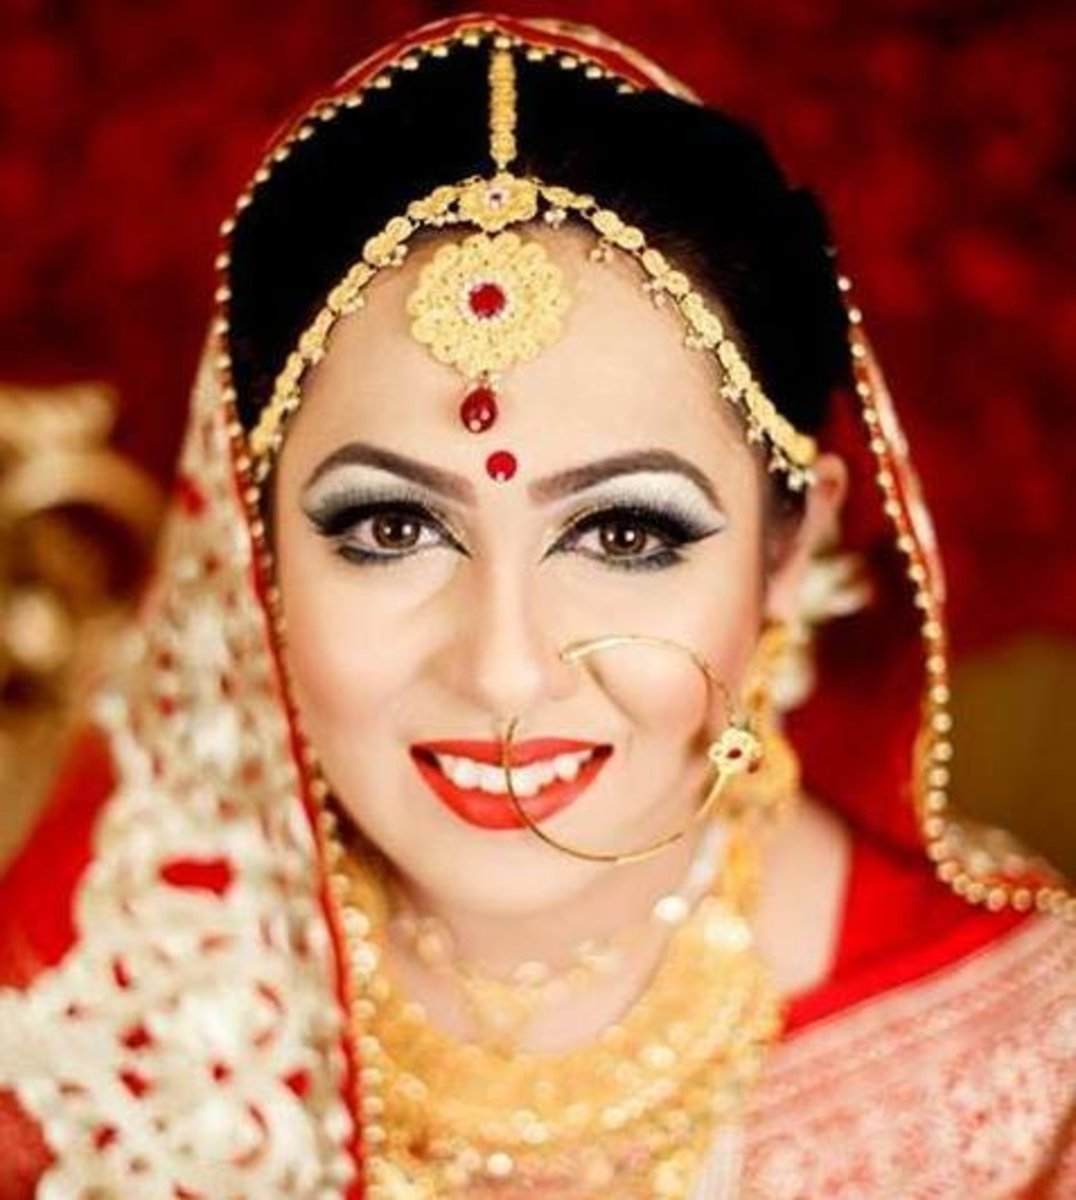 Bangladesh bridal makeover by Zahid Khan.